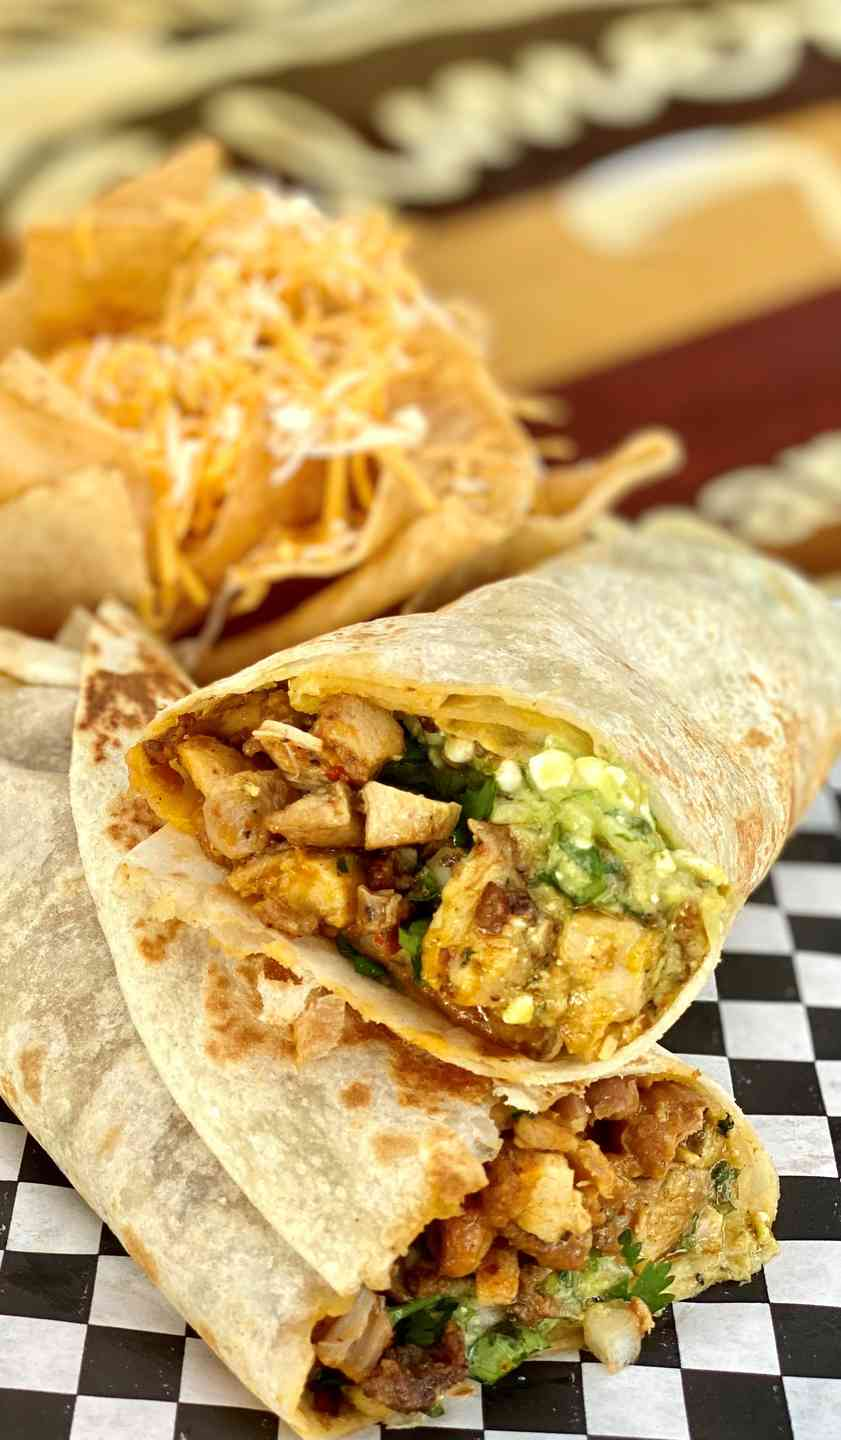 Hot & Spicy Grilled Chicken Burro